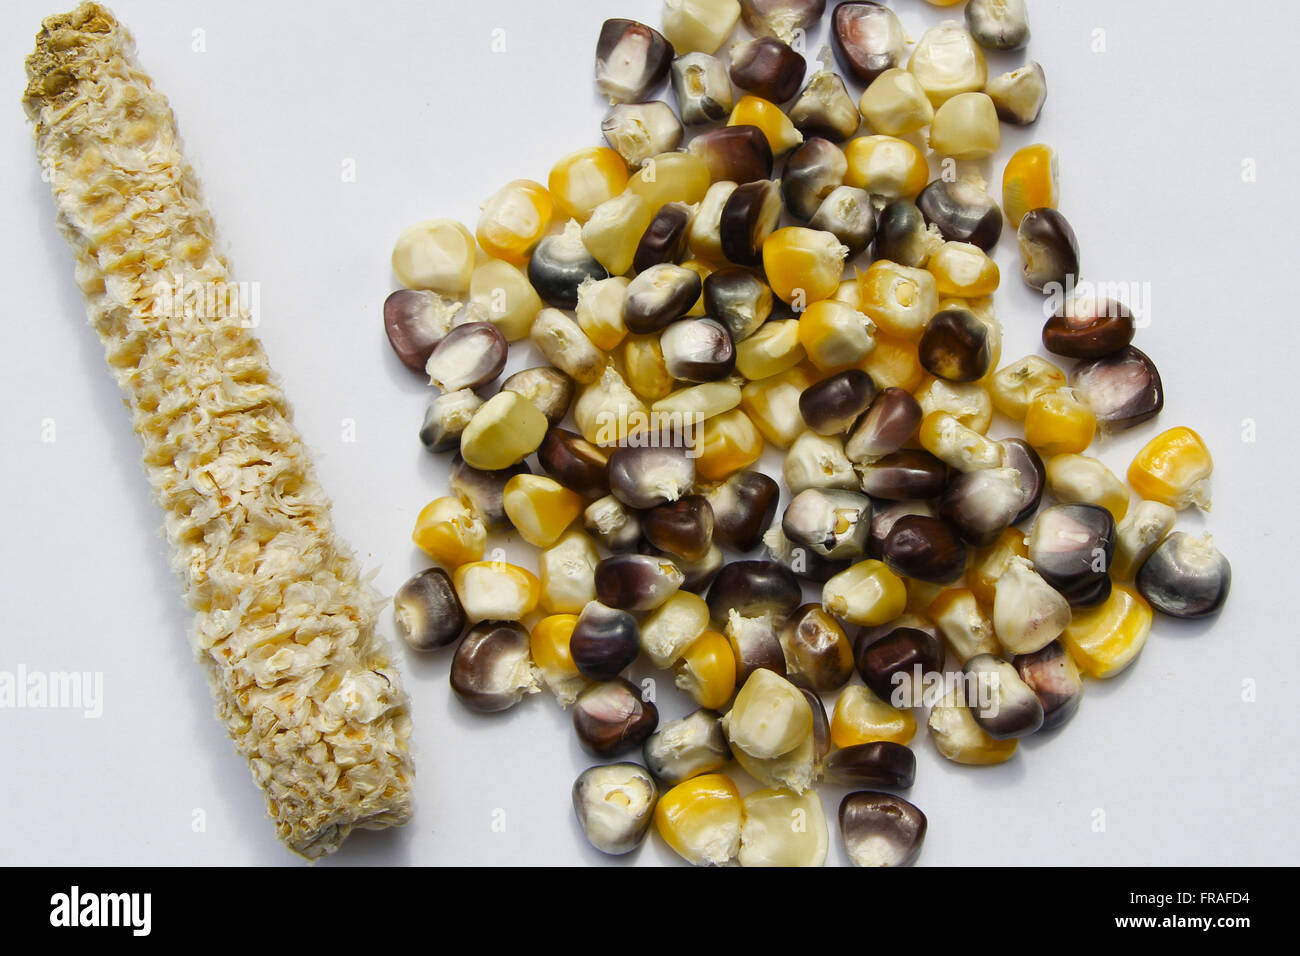 Creole maize - Zea mays - Stock Image